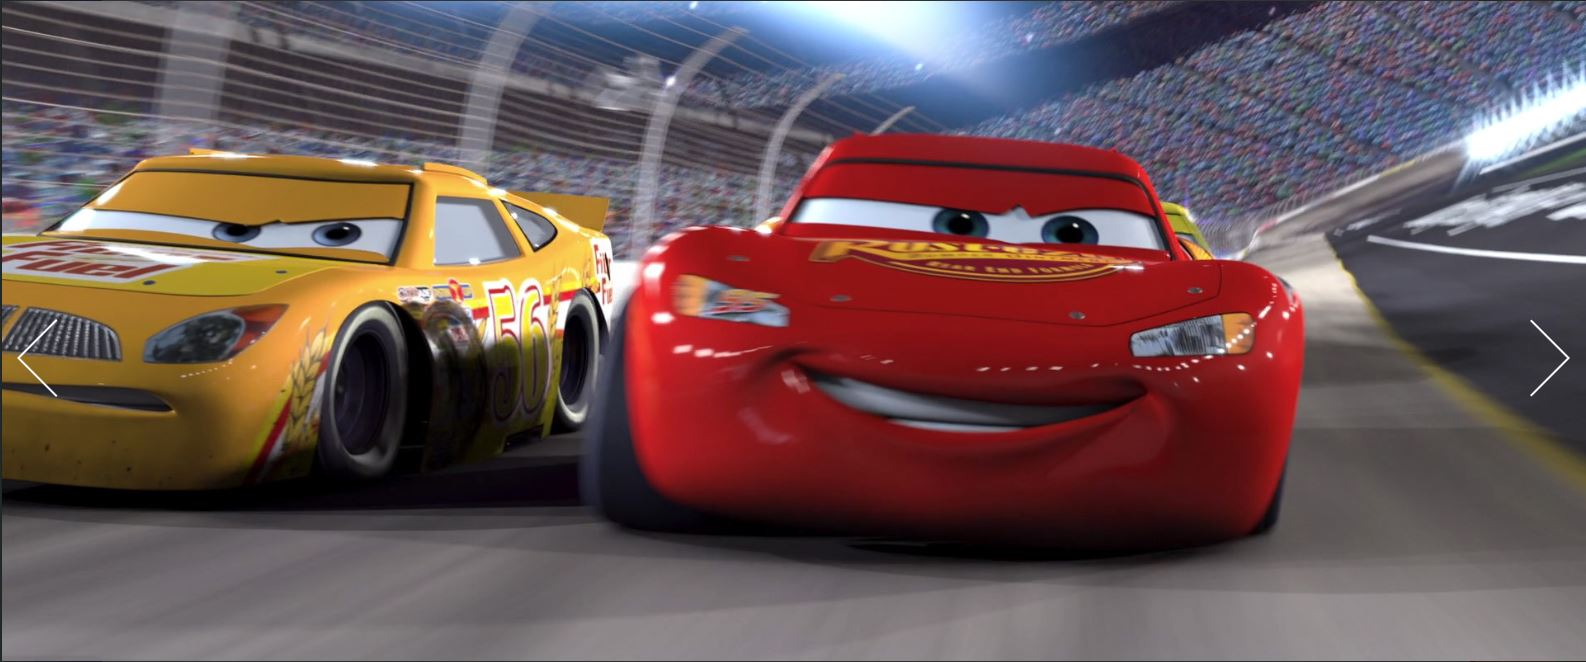 Real gone disney wiki fandom powered by wikia - Images flash mcqueen ...